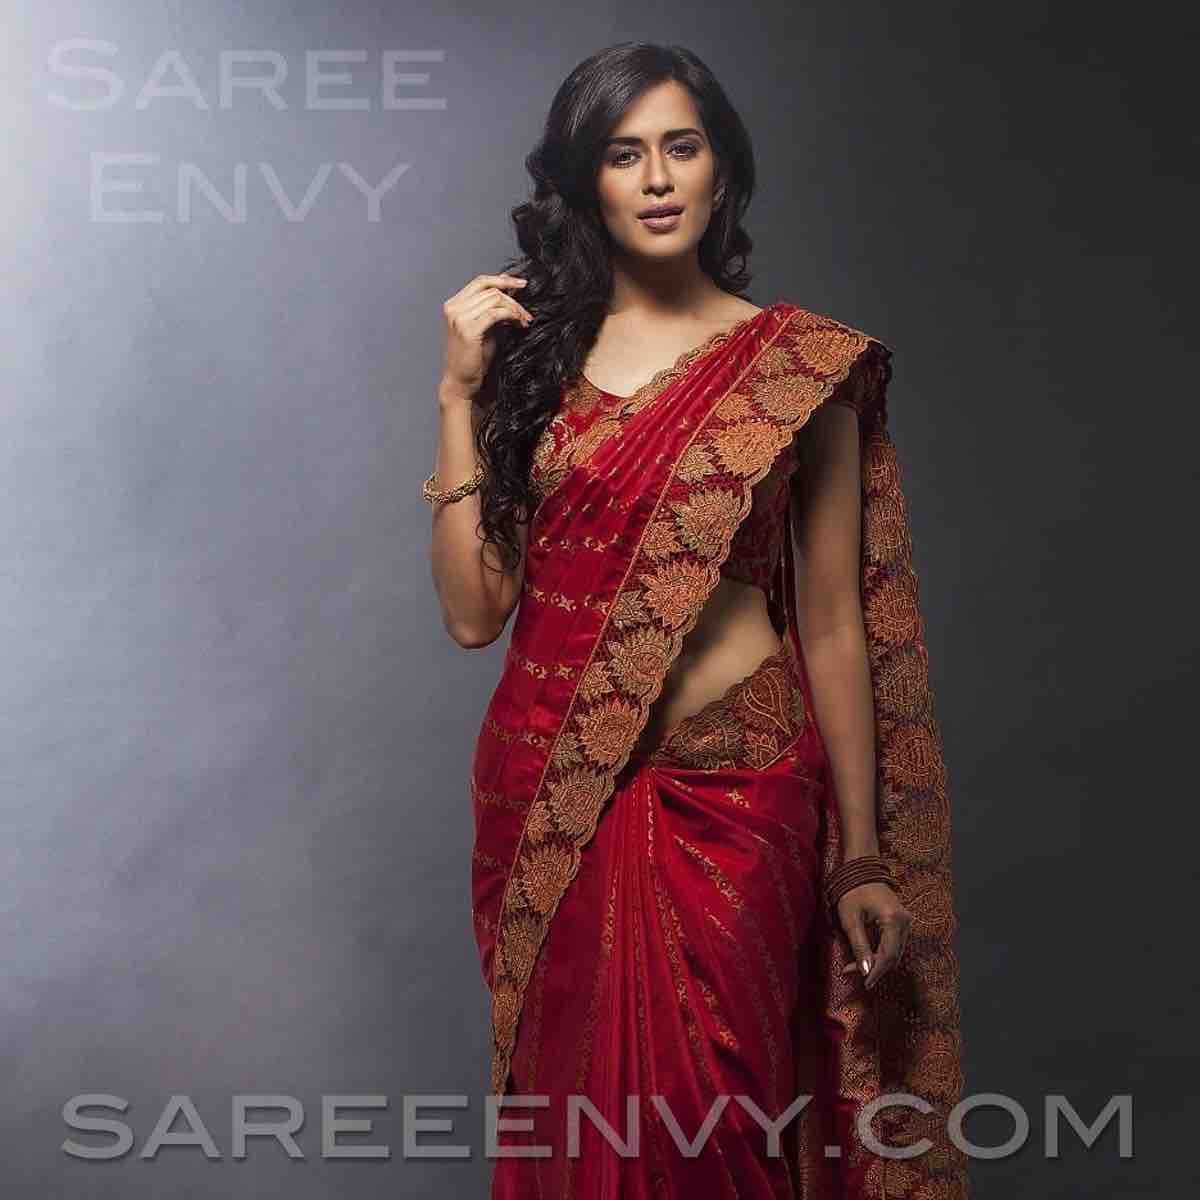 baee821413819 Saree Envy – Unique Designer High Quality Handcrafted Sarees